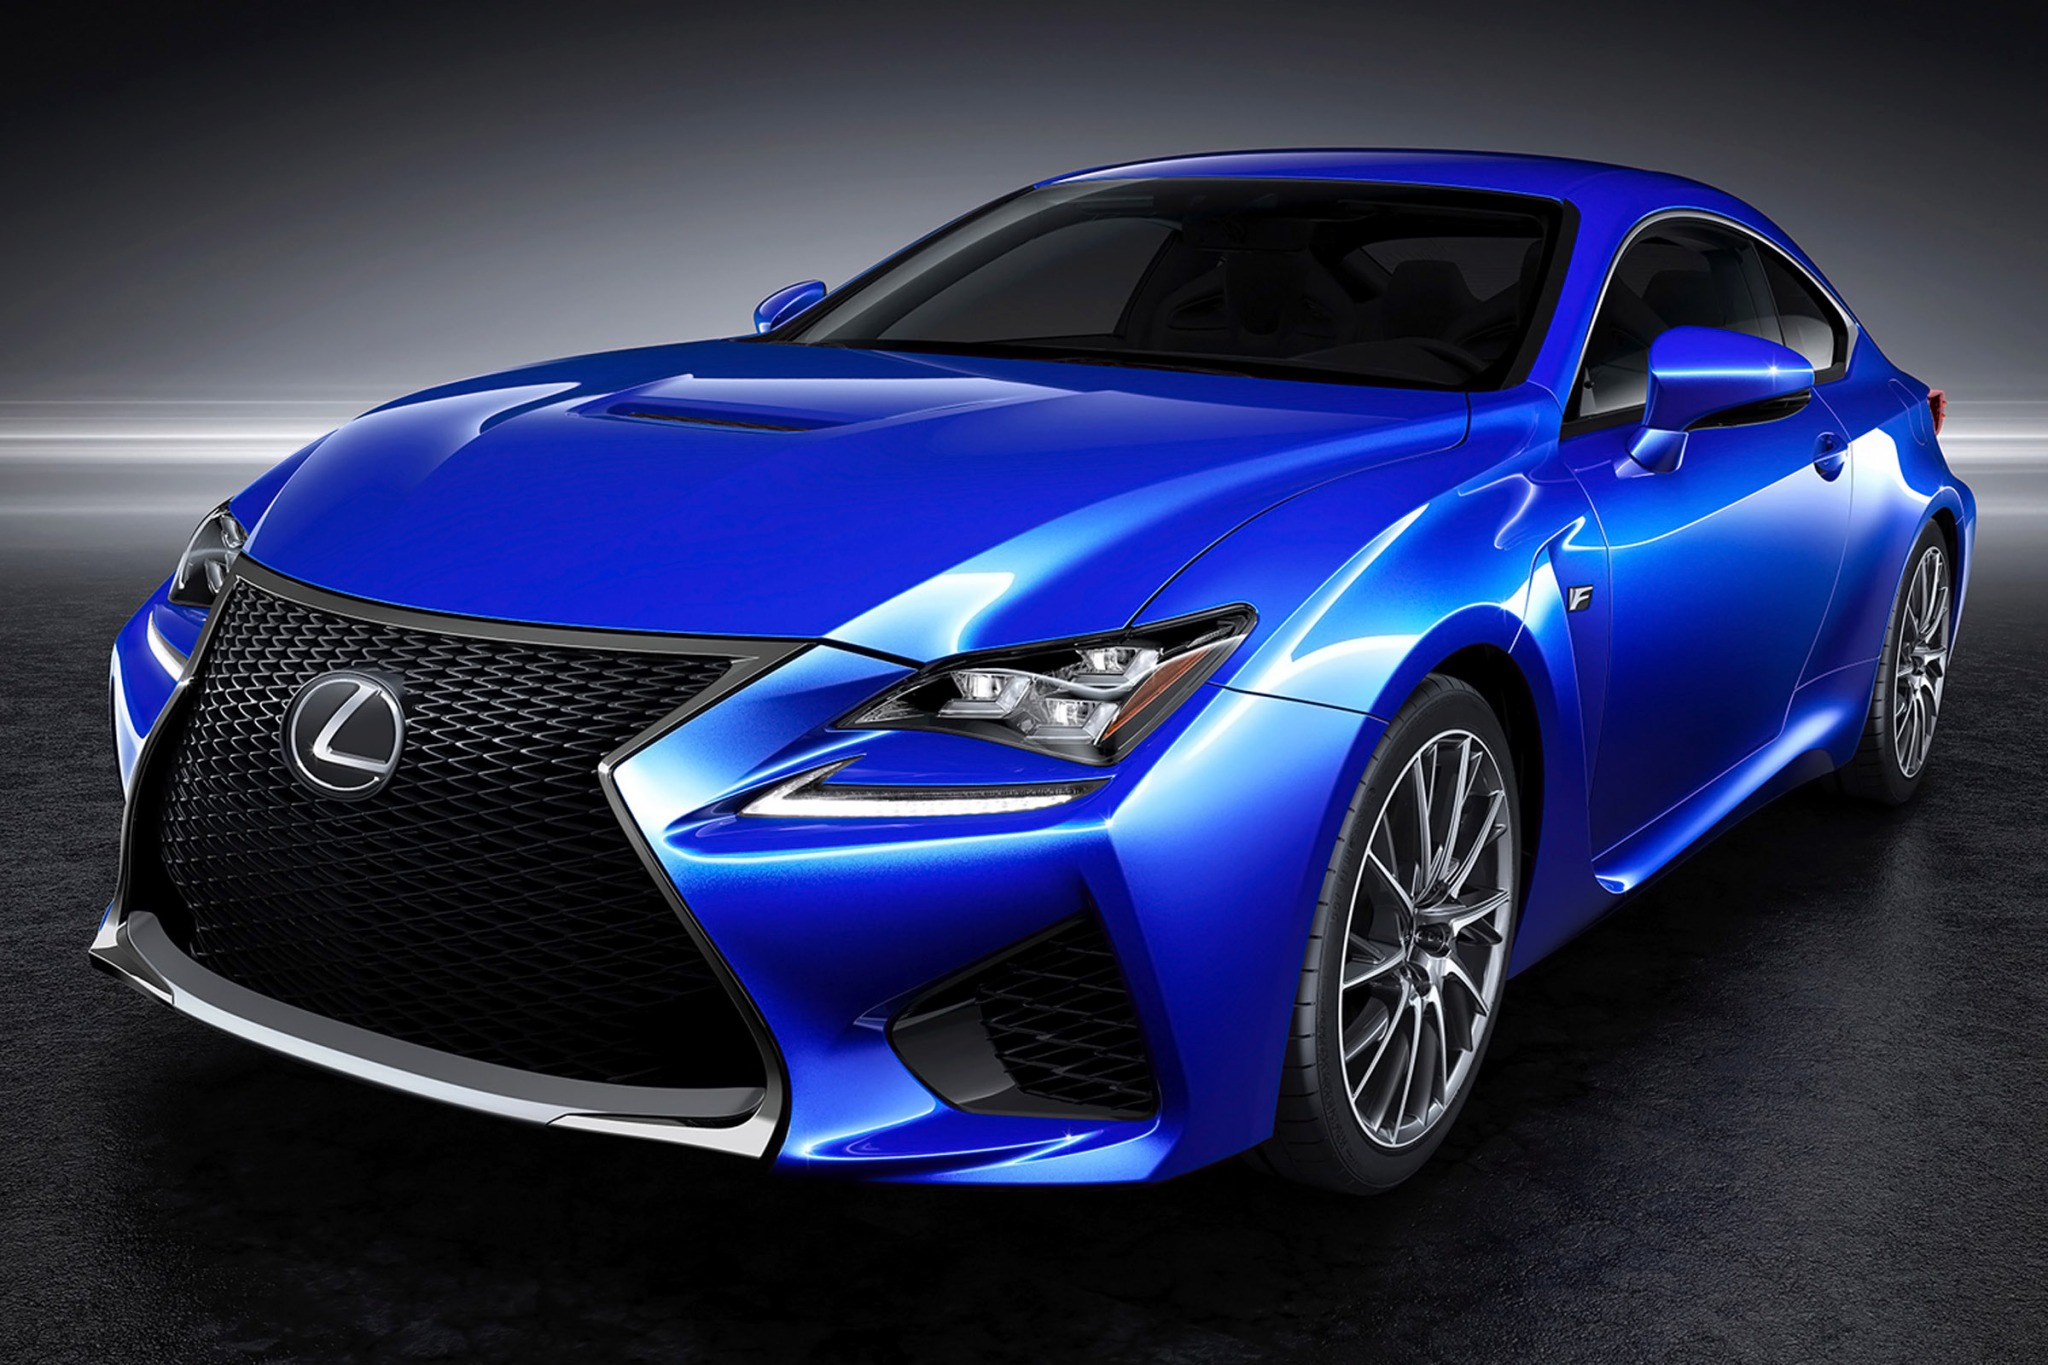 2015 Lexus RC F Coupe Ext exterior #3